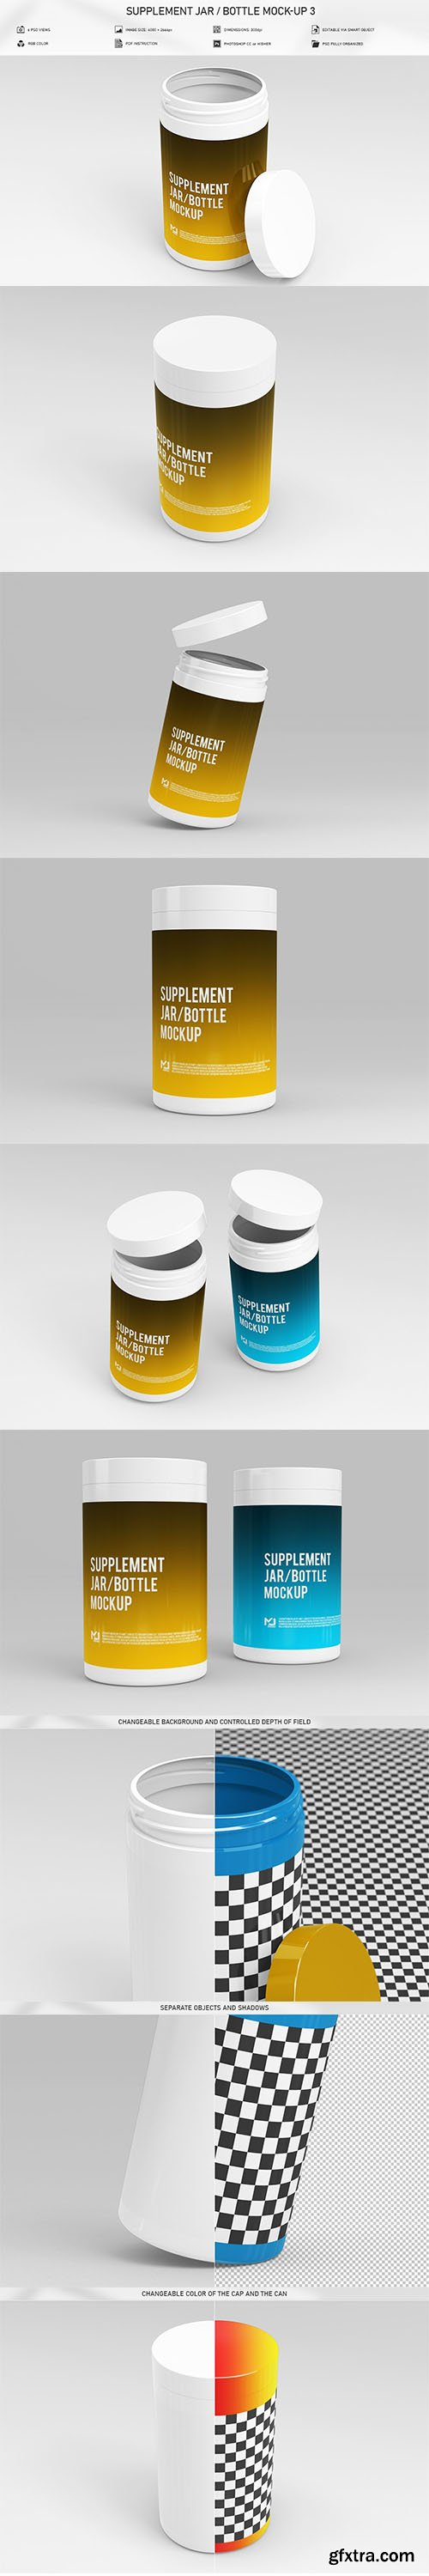 CreativeMarket - Supplement Jar / Bottle Mock-Up 3 5906977